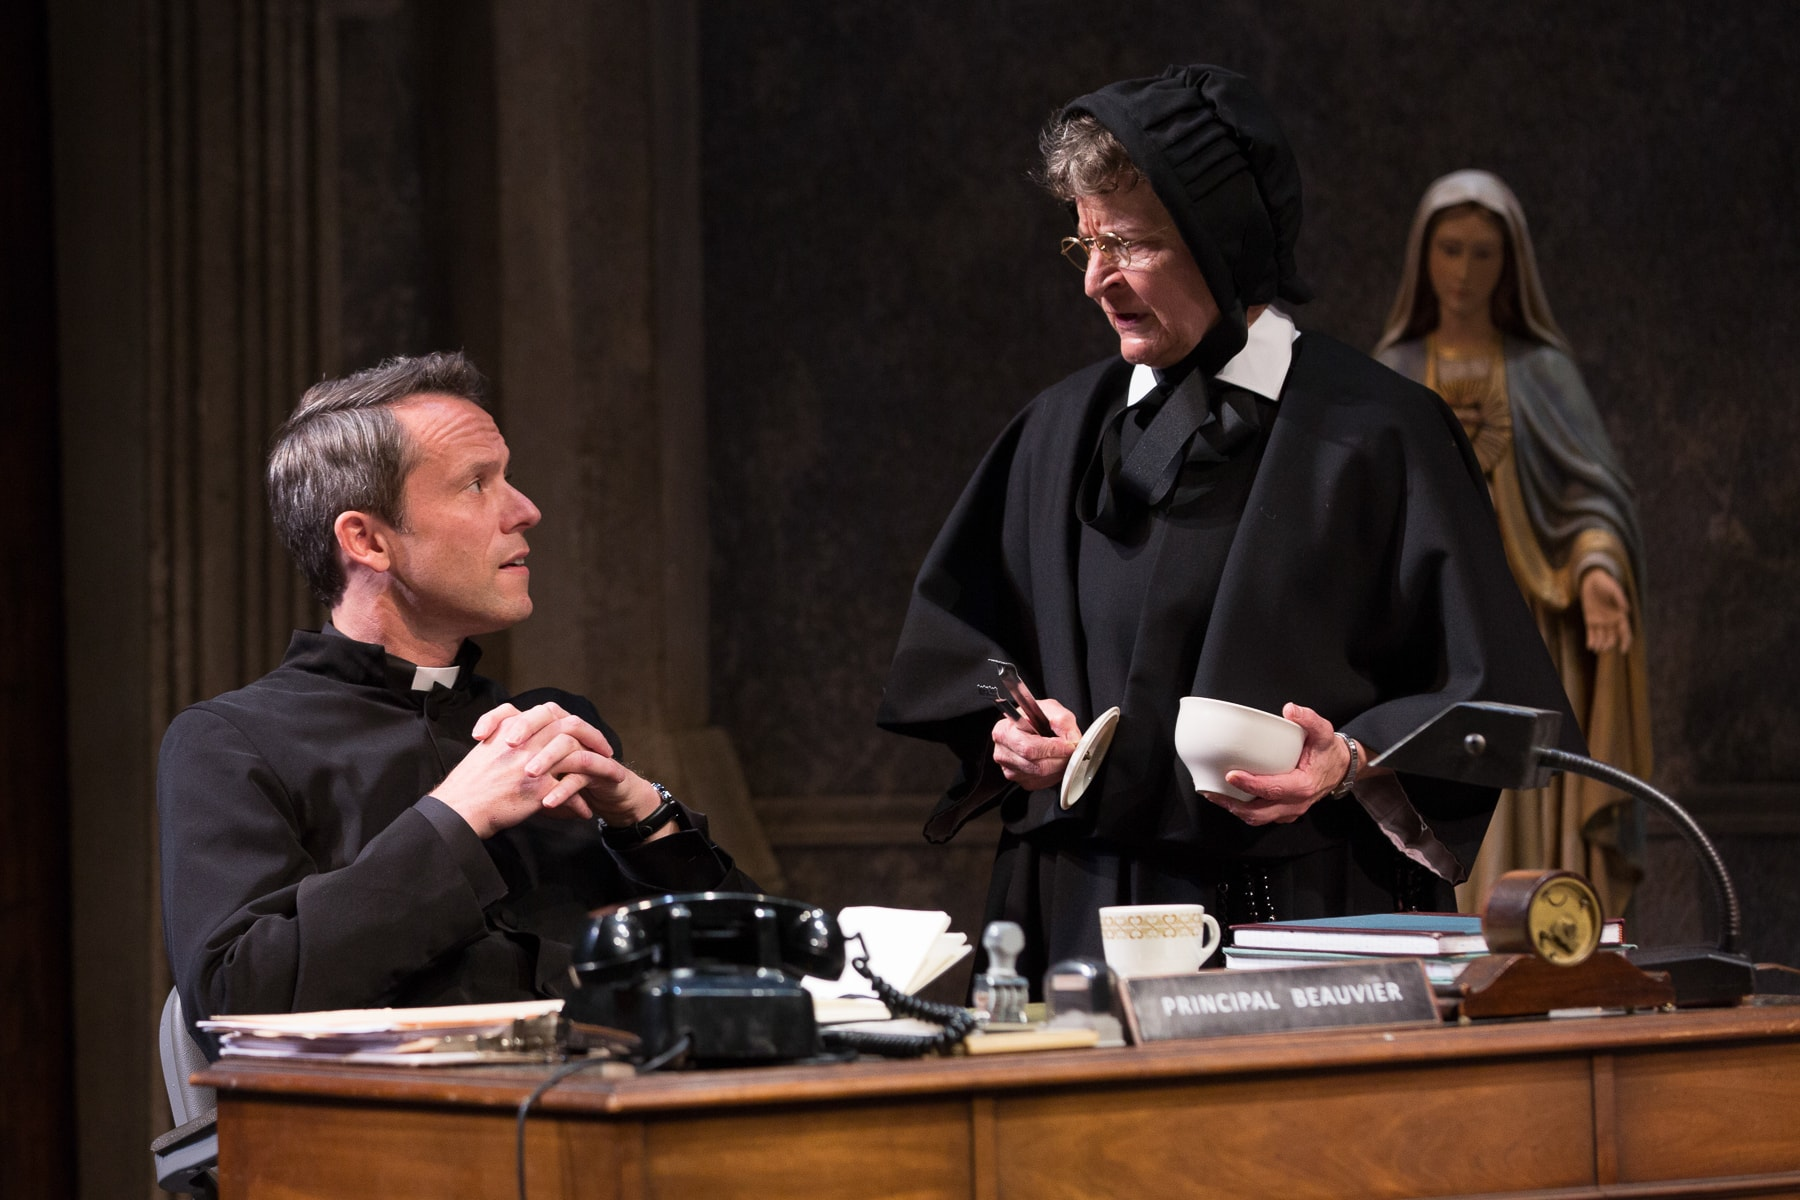 Christian Conn and Sarah Marshall in 'Doubt: A Parable' at Studio Theatre. Photo by Teresa Wood.